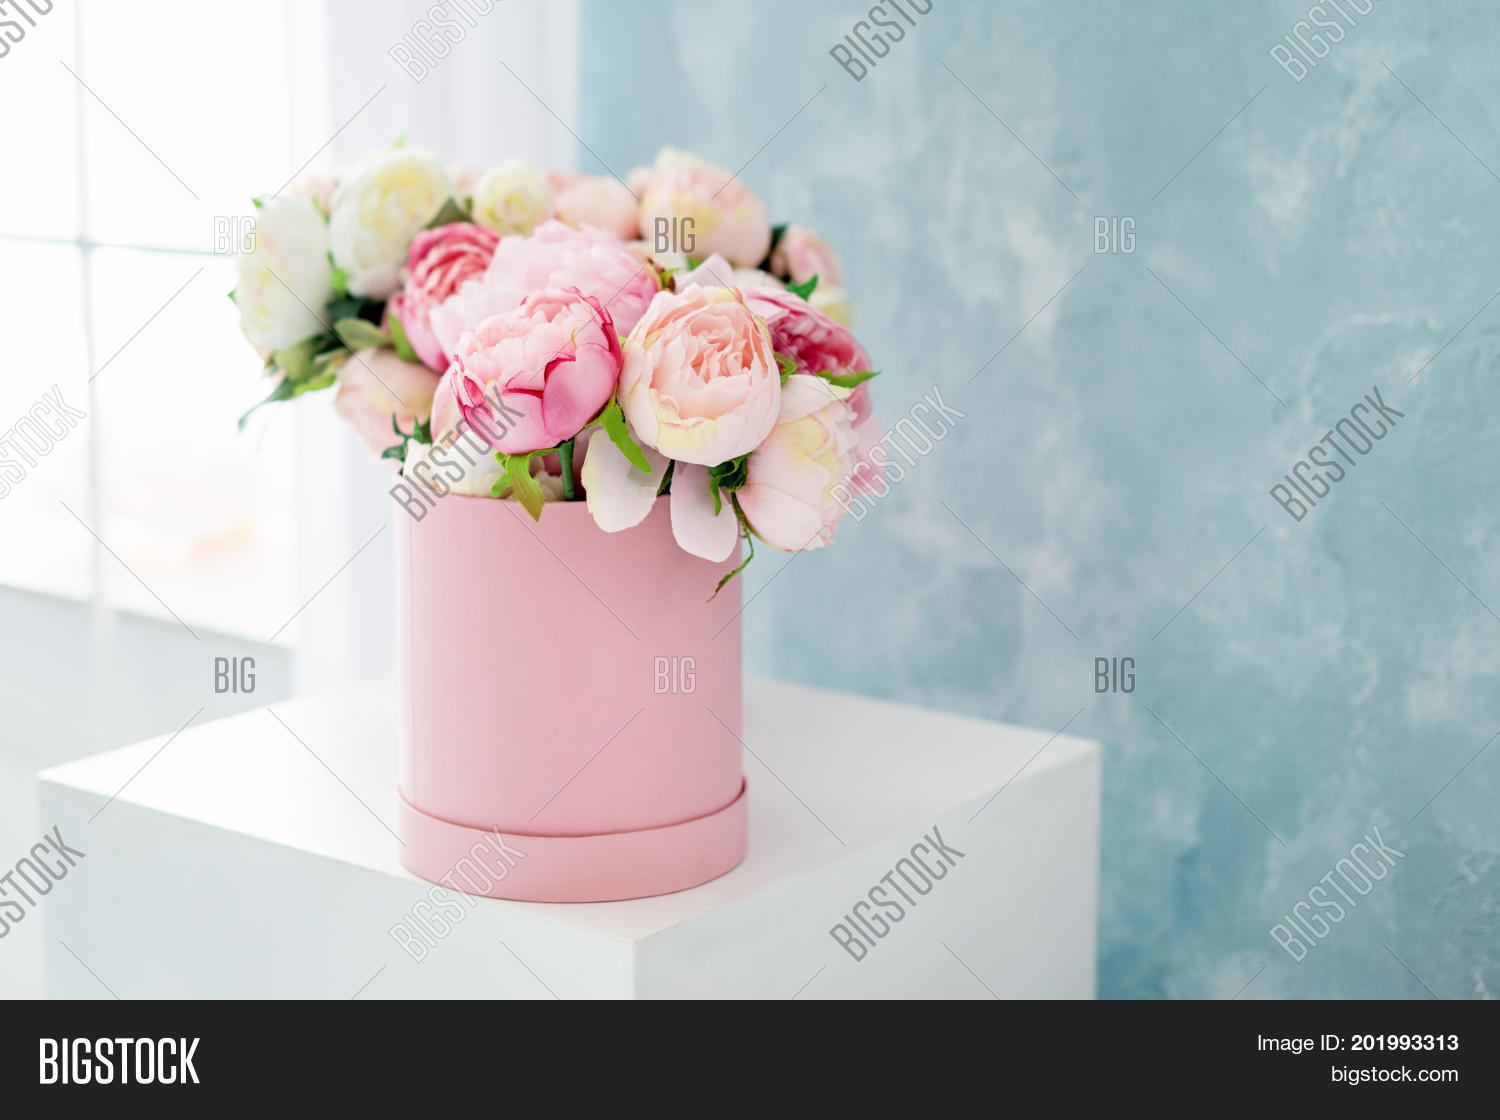 Flowers round luxury image photo free trial bigstock flowers in round luxury present box bouquet of pink and white peonies in paper box izmirmasajfo